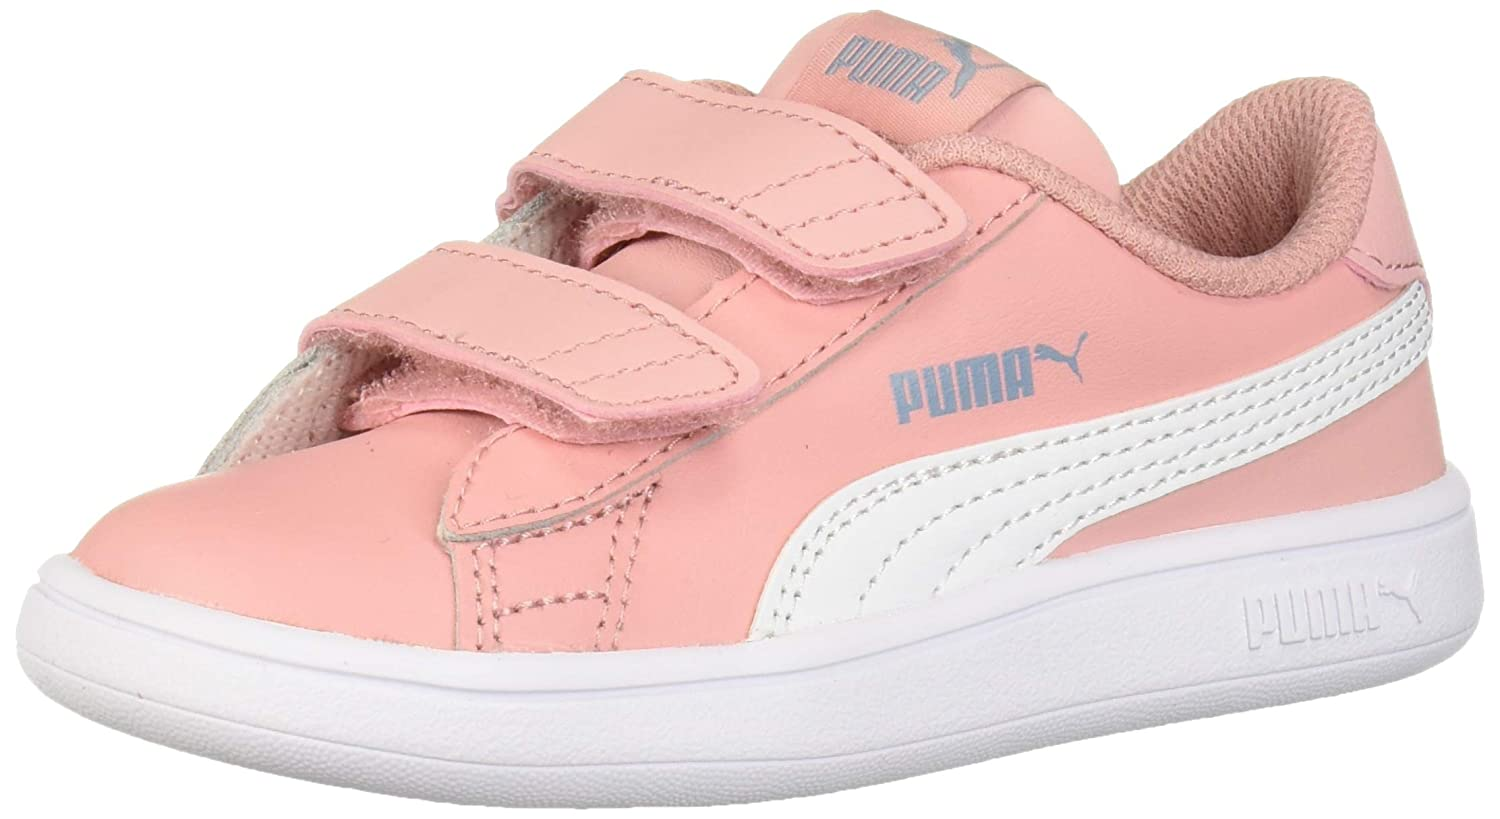 Details about Puma Smash V2 (Toddler Girl's Size 5) Strap On Leather Sneakers White